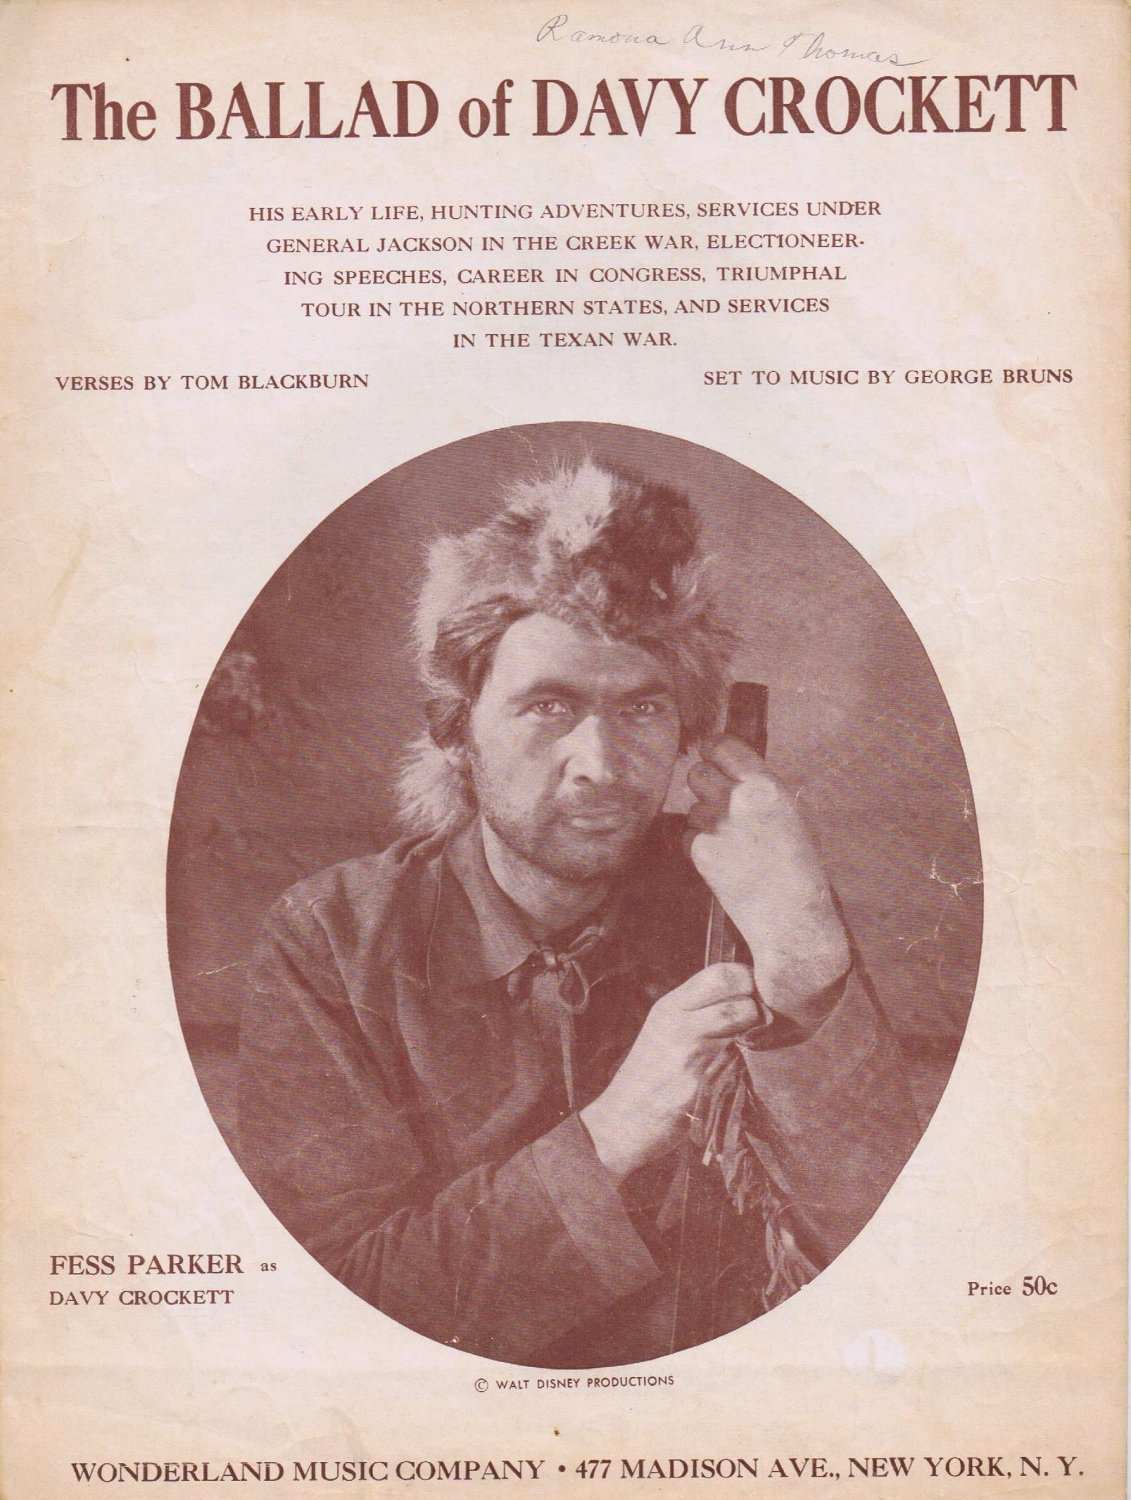 The Ballad of Davy Crockett 1954 Sheet Music with Fess Parker Pictures